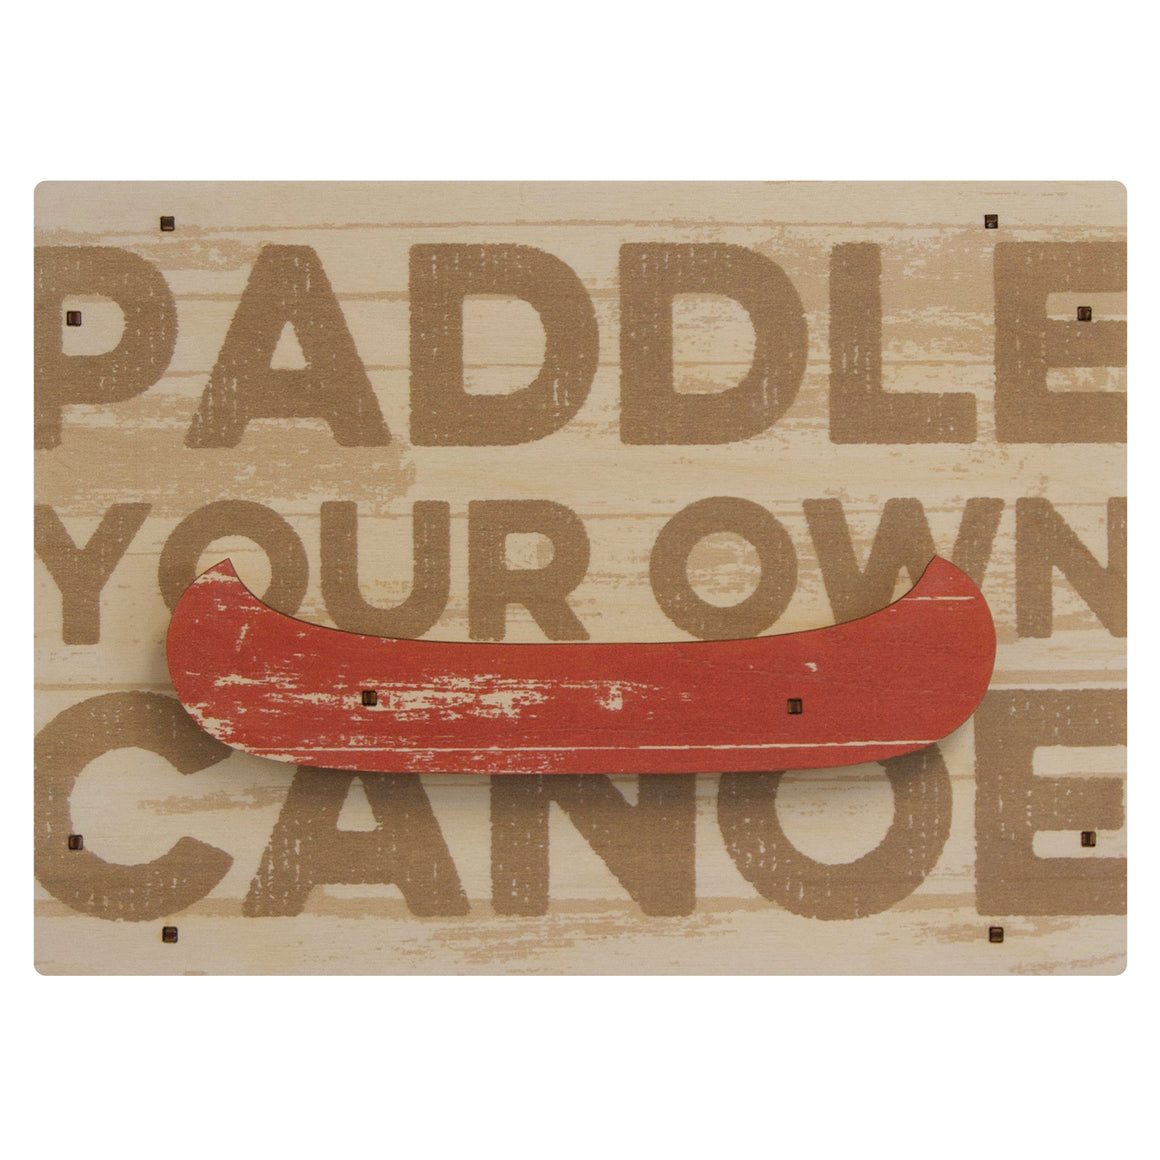 paddle your own canoe wall sign